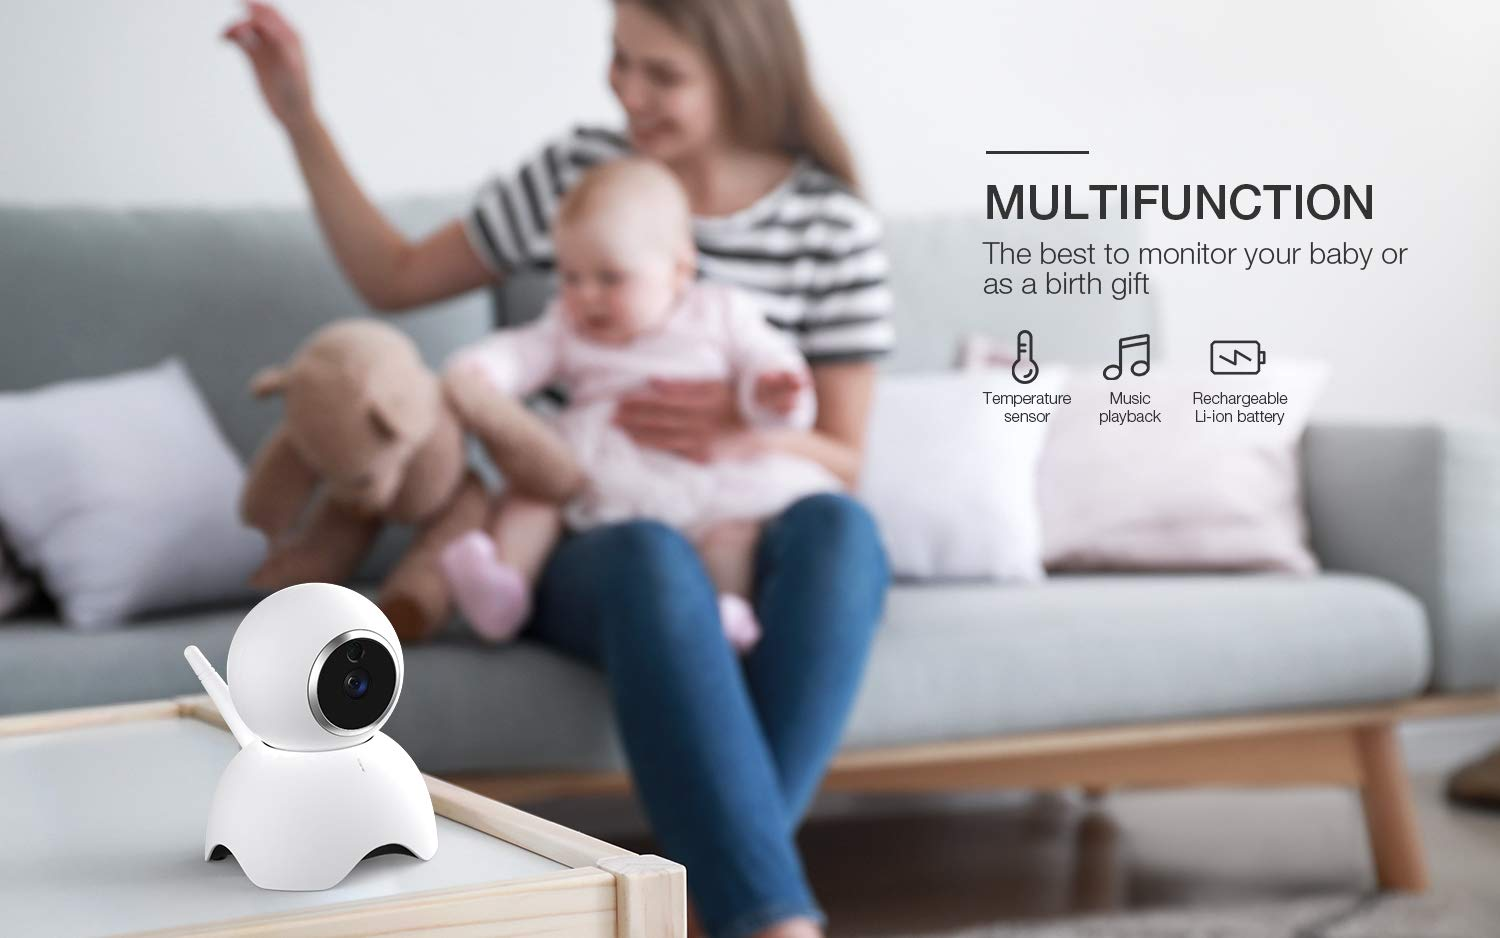 Baby Monitor, BOIFUN Baby Video Camera with 5'' 1280x720P HD Screen 2000mAh Rechargeable Battery with VOX Night Vision Temperature Monitor Two-Way Talk 355 Degree Remote Control Camera Baby/Elder/Pet BOIFUN Sleep Mode & Night Vision----In Sleep mode, The screen on the mother unit is black. Screen will light up when baby starts crying. Night vision distance is 5 meters, so you will never miss any moment of your baby, and it frees yourself from the hustle and bustle. You will be able to have your own time to read, watch TV, or even enjoy a couple of drinks with your husband. Bring you lots of fun. 2000mAh Battery----2000mAh high-capacity battery (mother unit), lasts up to 6 hours with full functions, and 20 hours in sleep mode, from testing results. Let you have longer time get rid of the shackles of the wires. Bring you longer time of fun. 300Meters Extra-Large Range----300m signal coverage area (outdoor test) allows you to cook happily downstairs, enjoy the sun in the pool, or even have a relaxing BBQ time with friends in terrace. Bring you bigger fun. 8